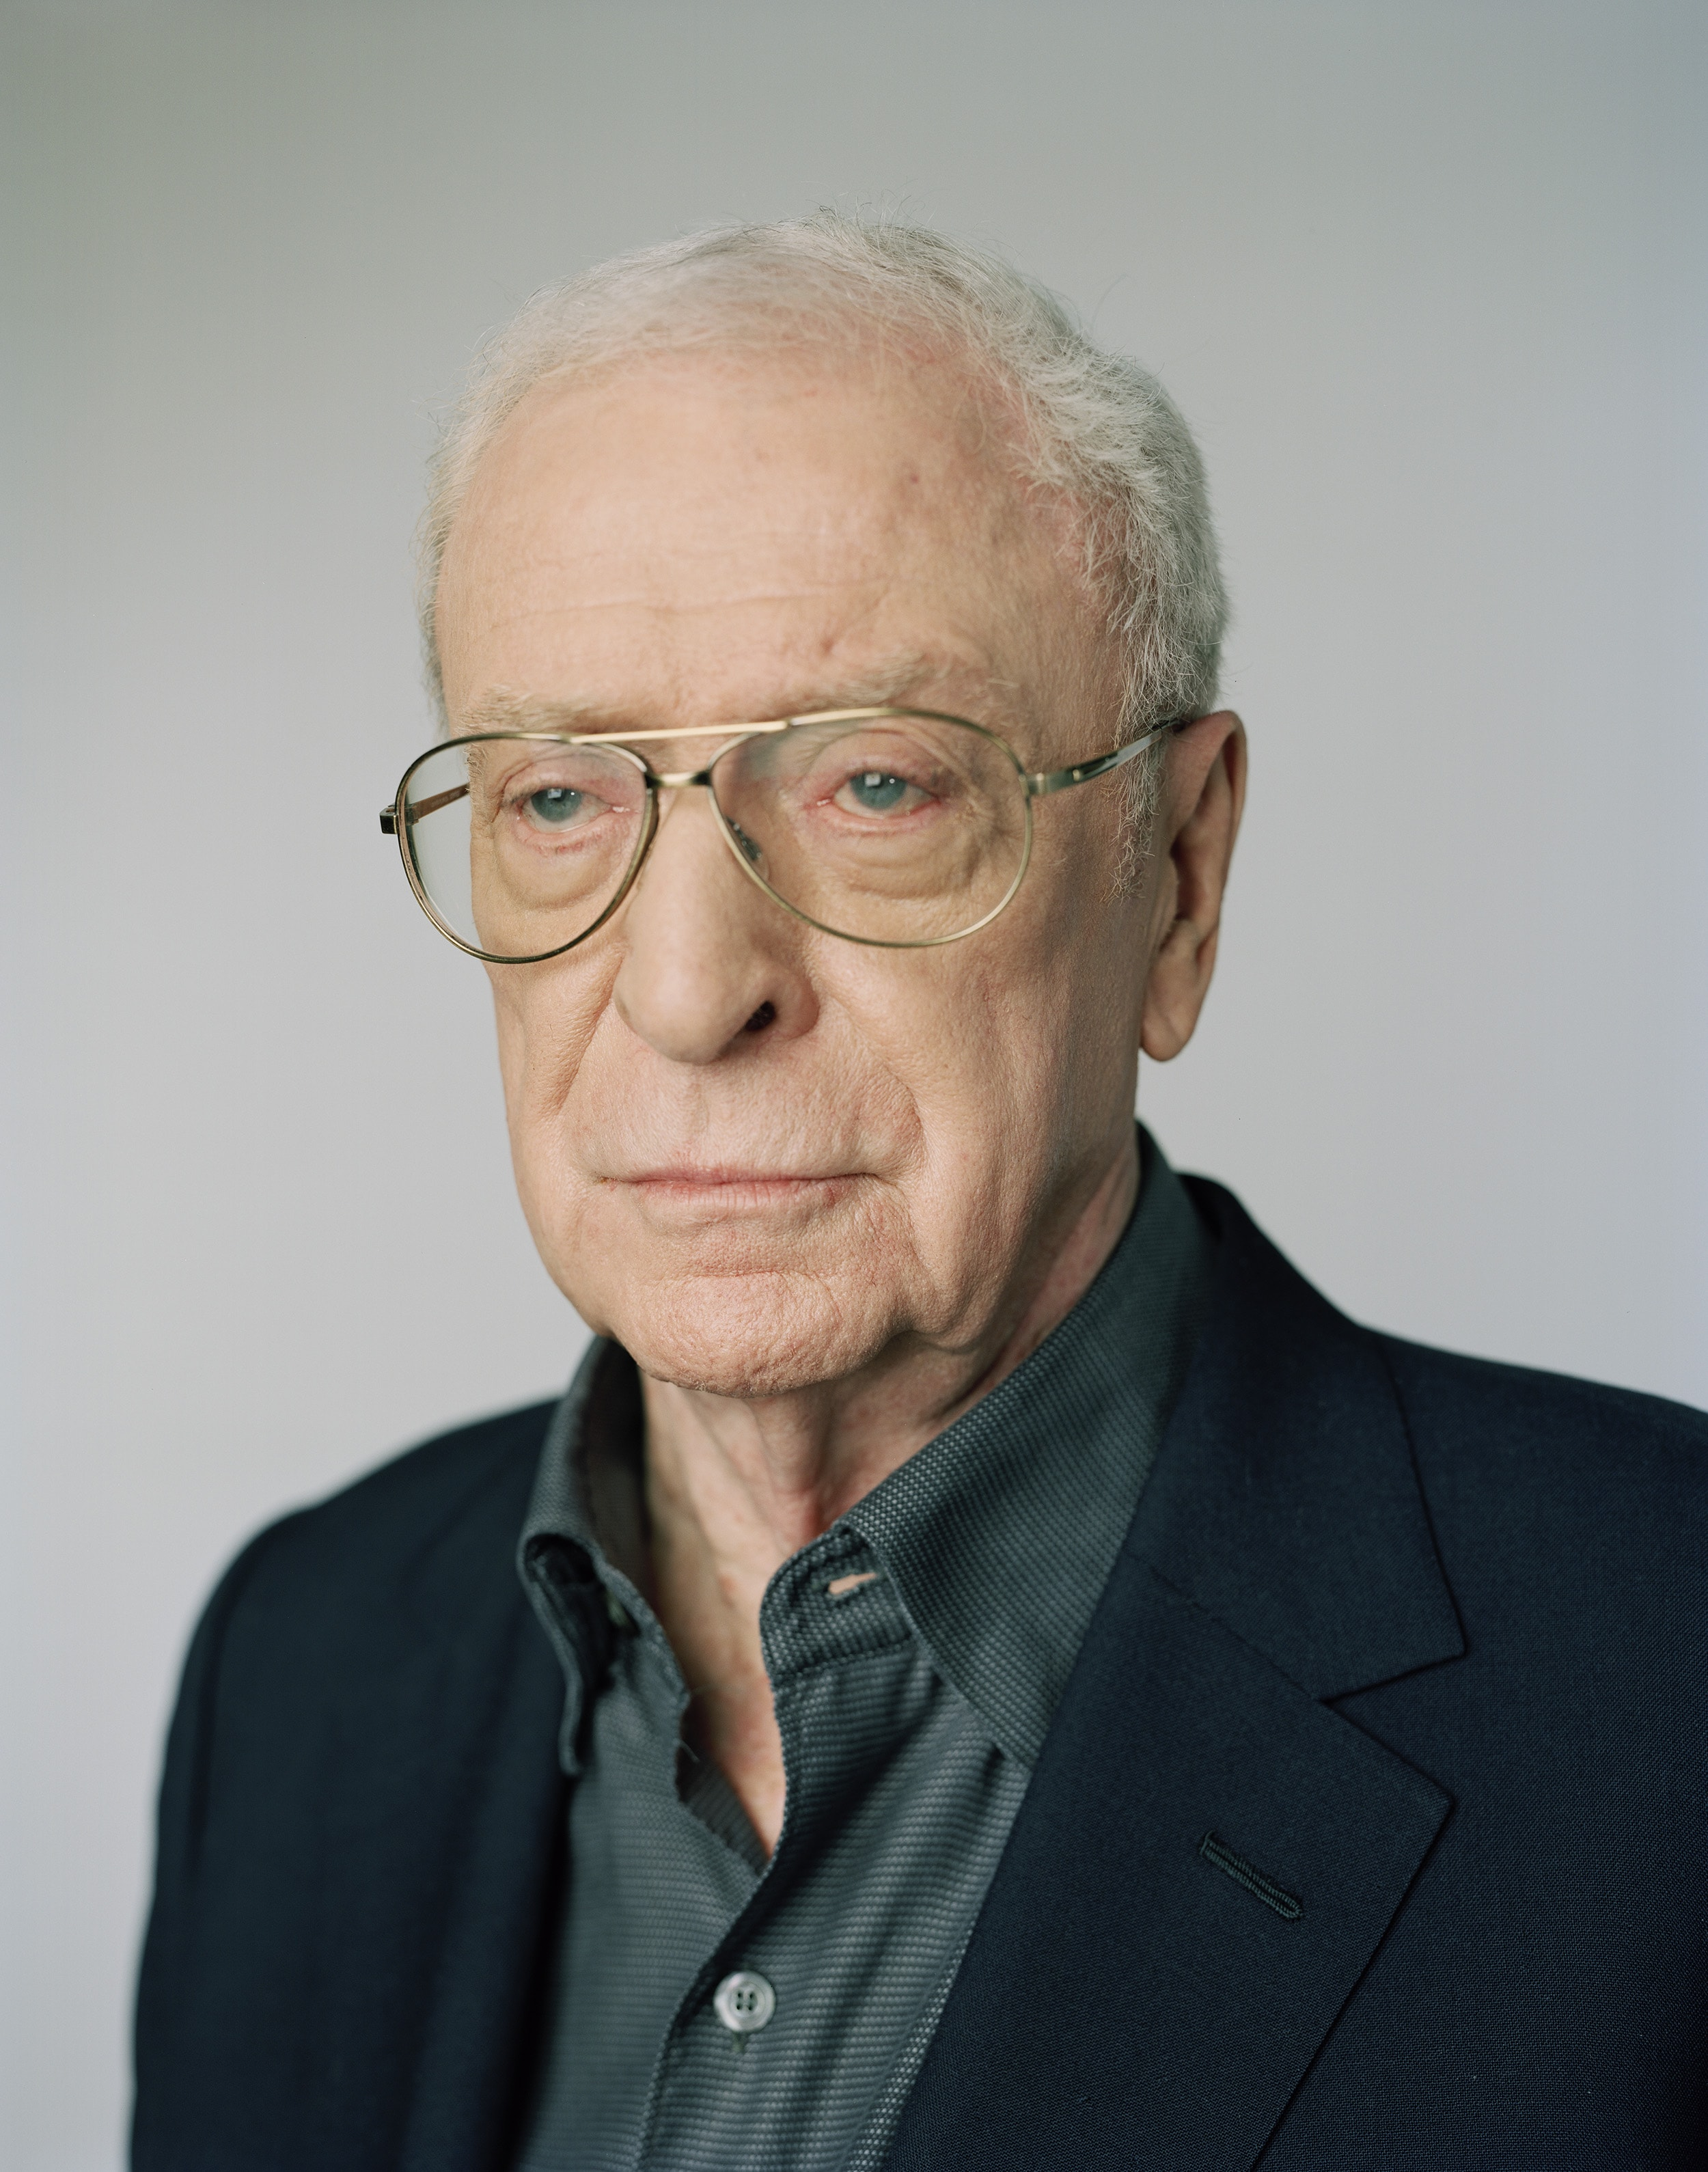 Michael Caine Full hd wallpapers